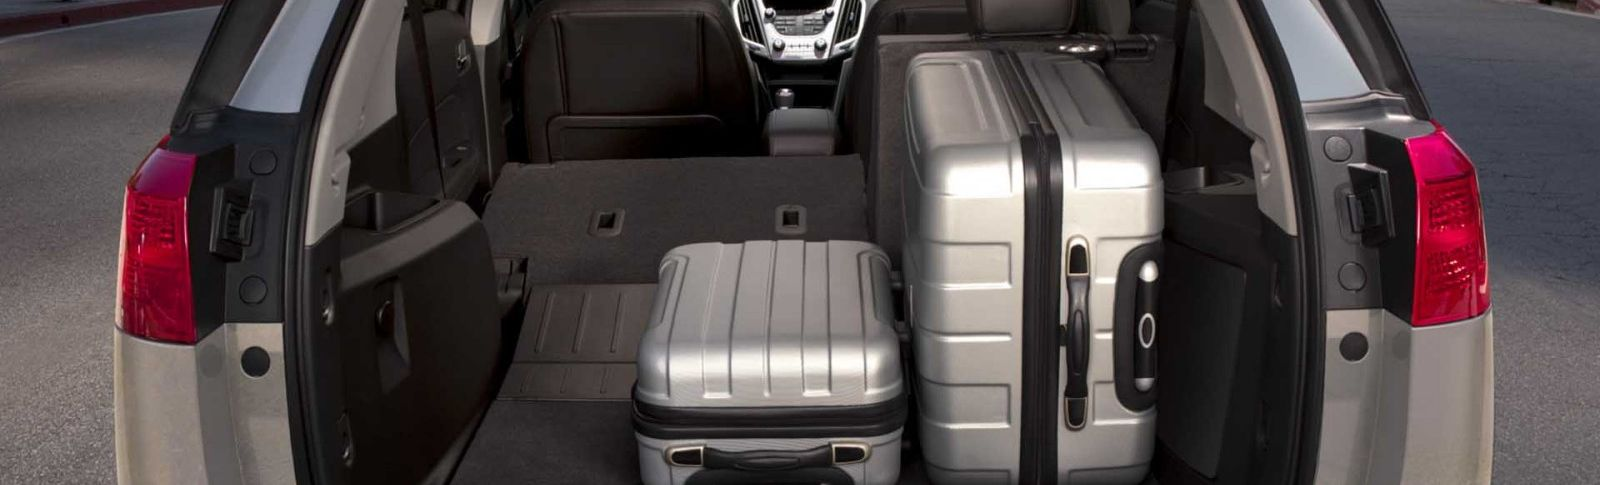 2017 GMC Terrain Cargo Space